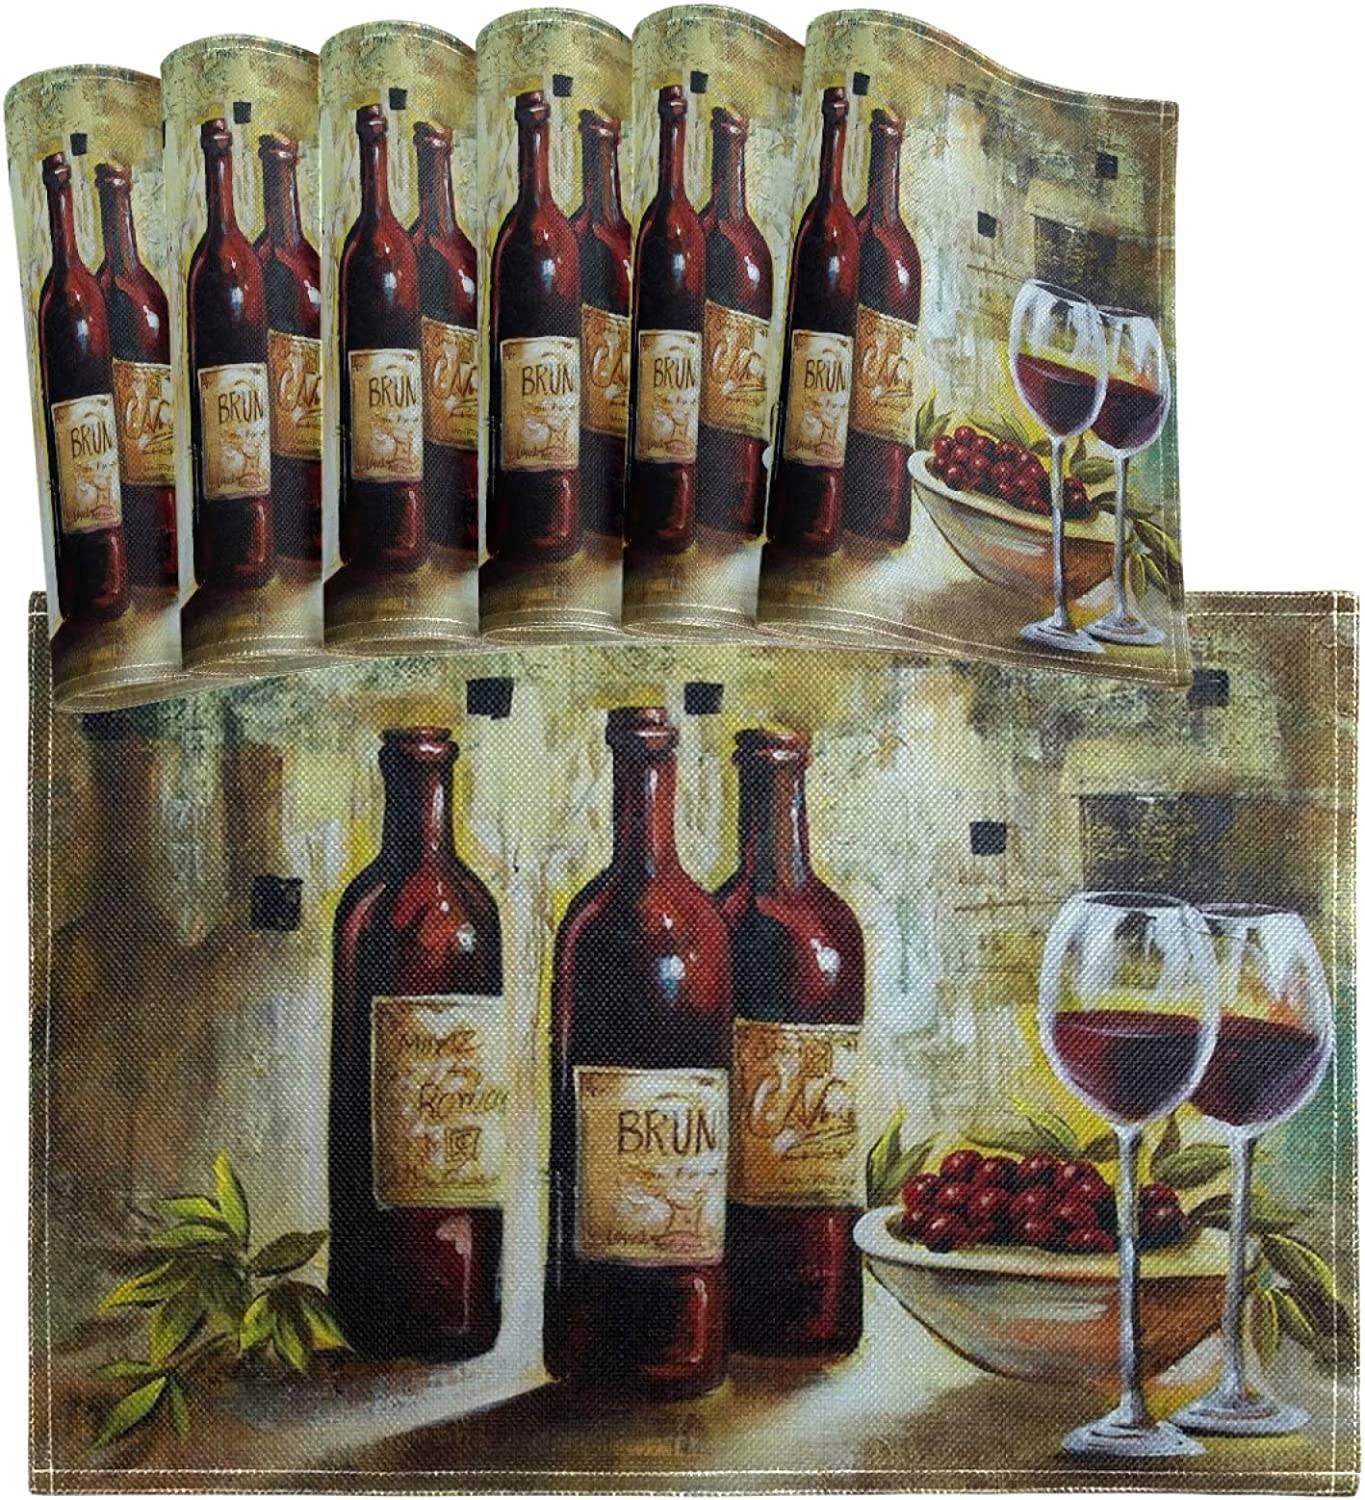 Oarencol Vintage Wine Bottle Glass Grape Painting Placemats Table Mats Set of 6, Heat-Resistant Washable Clean Kitchen Place Mats for Dining Table Decoration